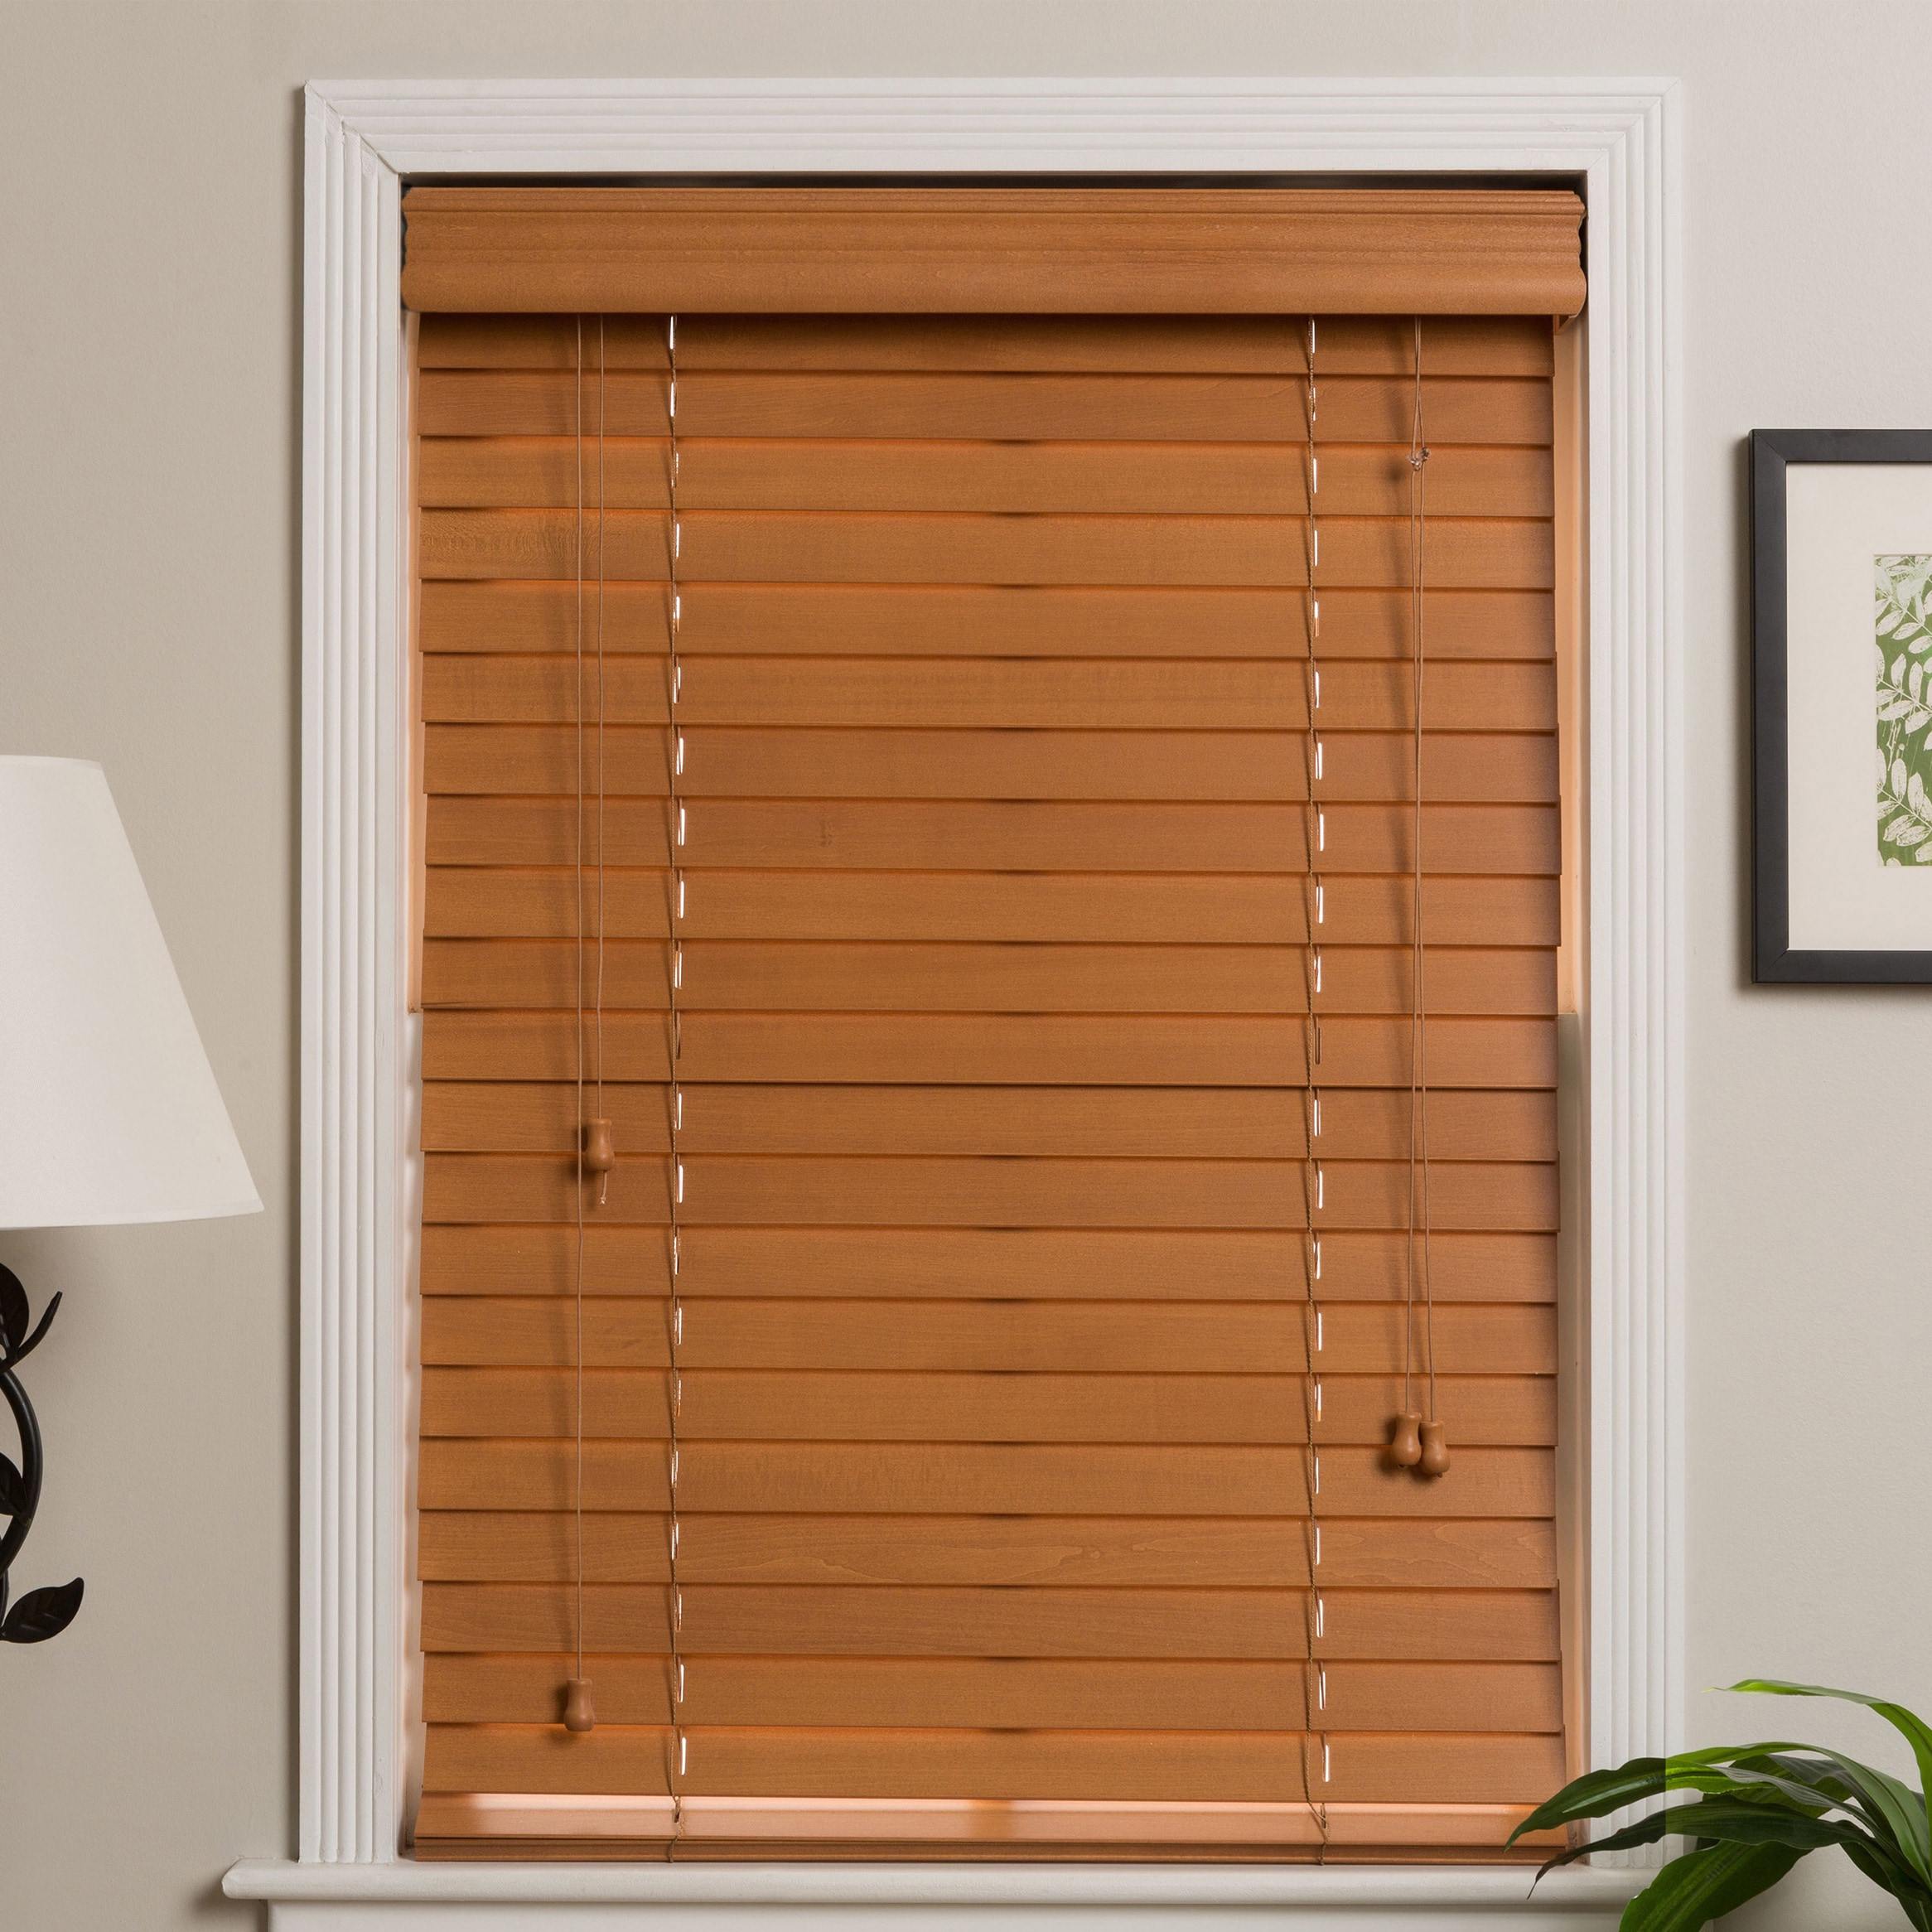 kmart wood target white best interior blinds awesome home bathroom for me at window wooden near decor